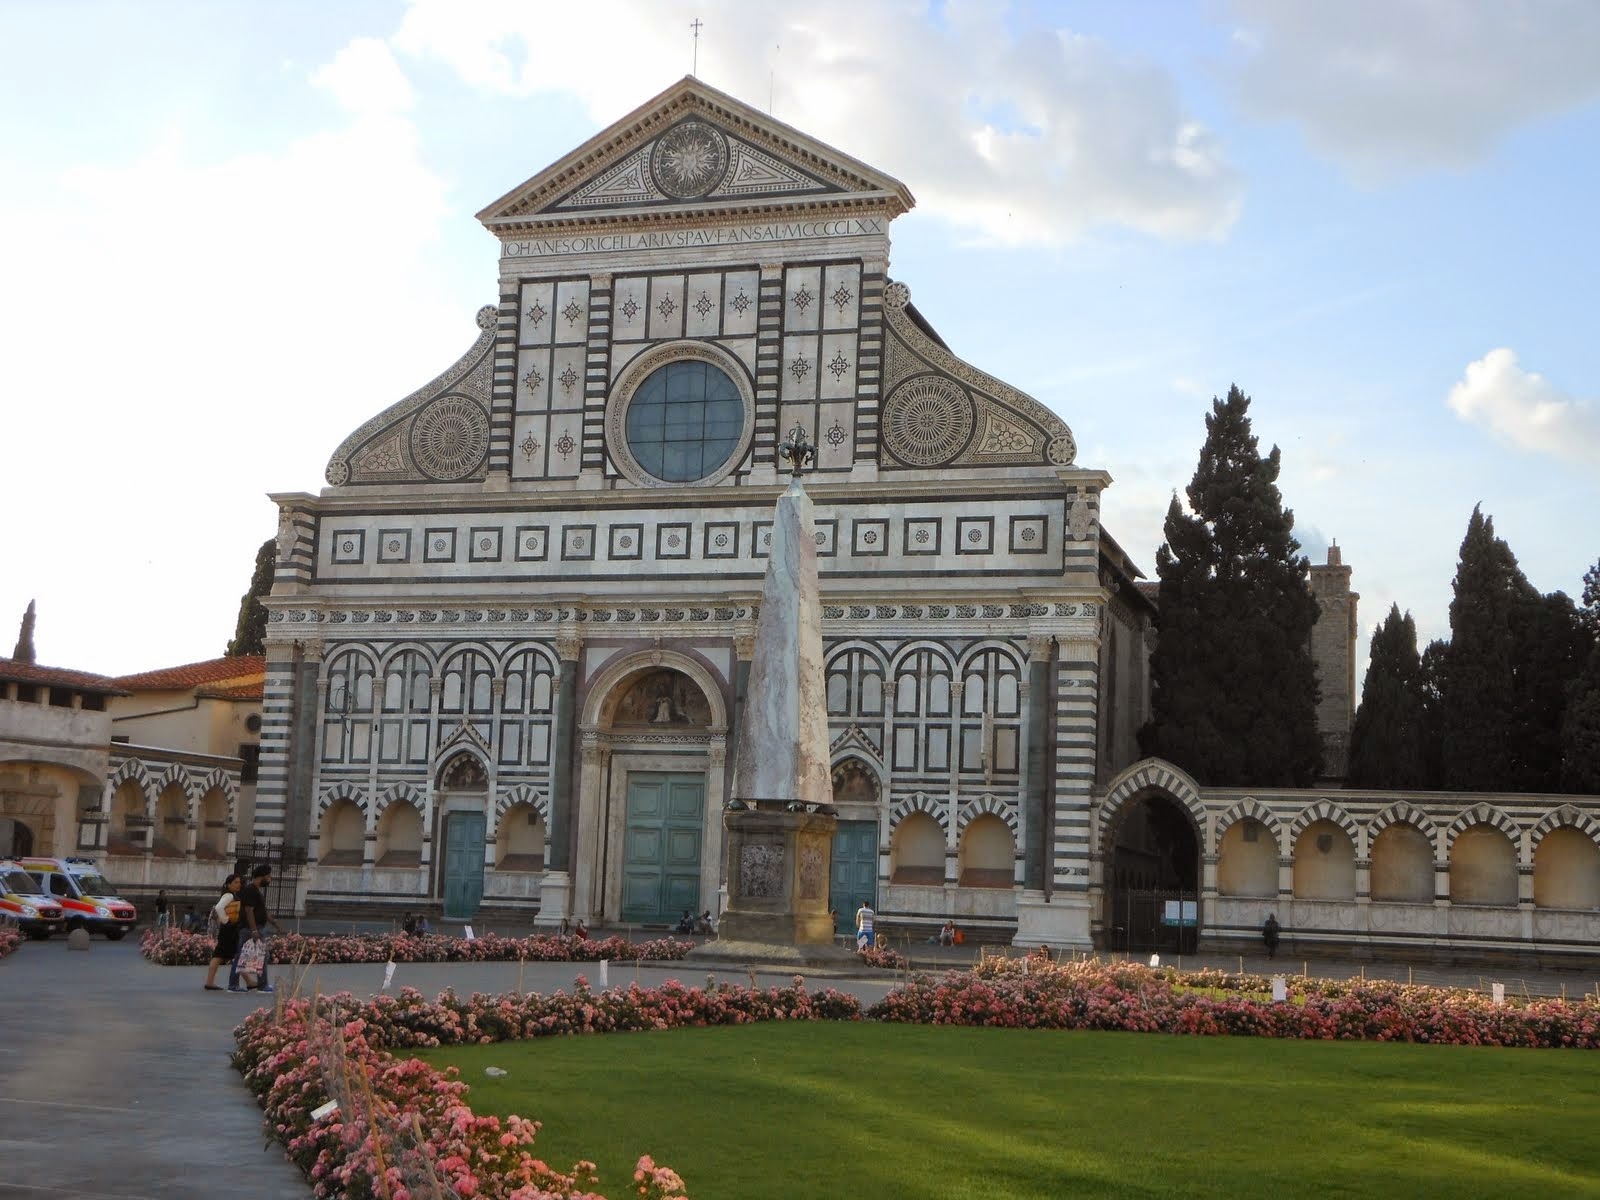 Basilica di Santa Maria Novella, right next to our hotel